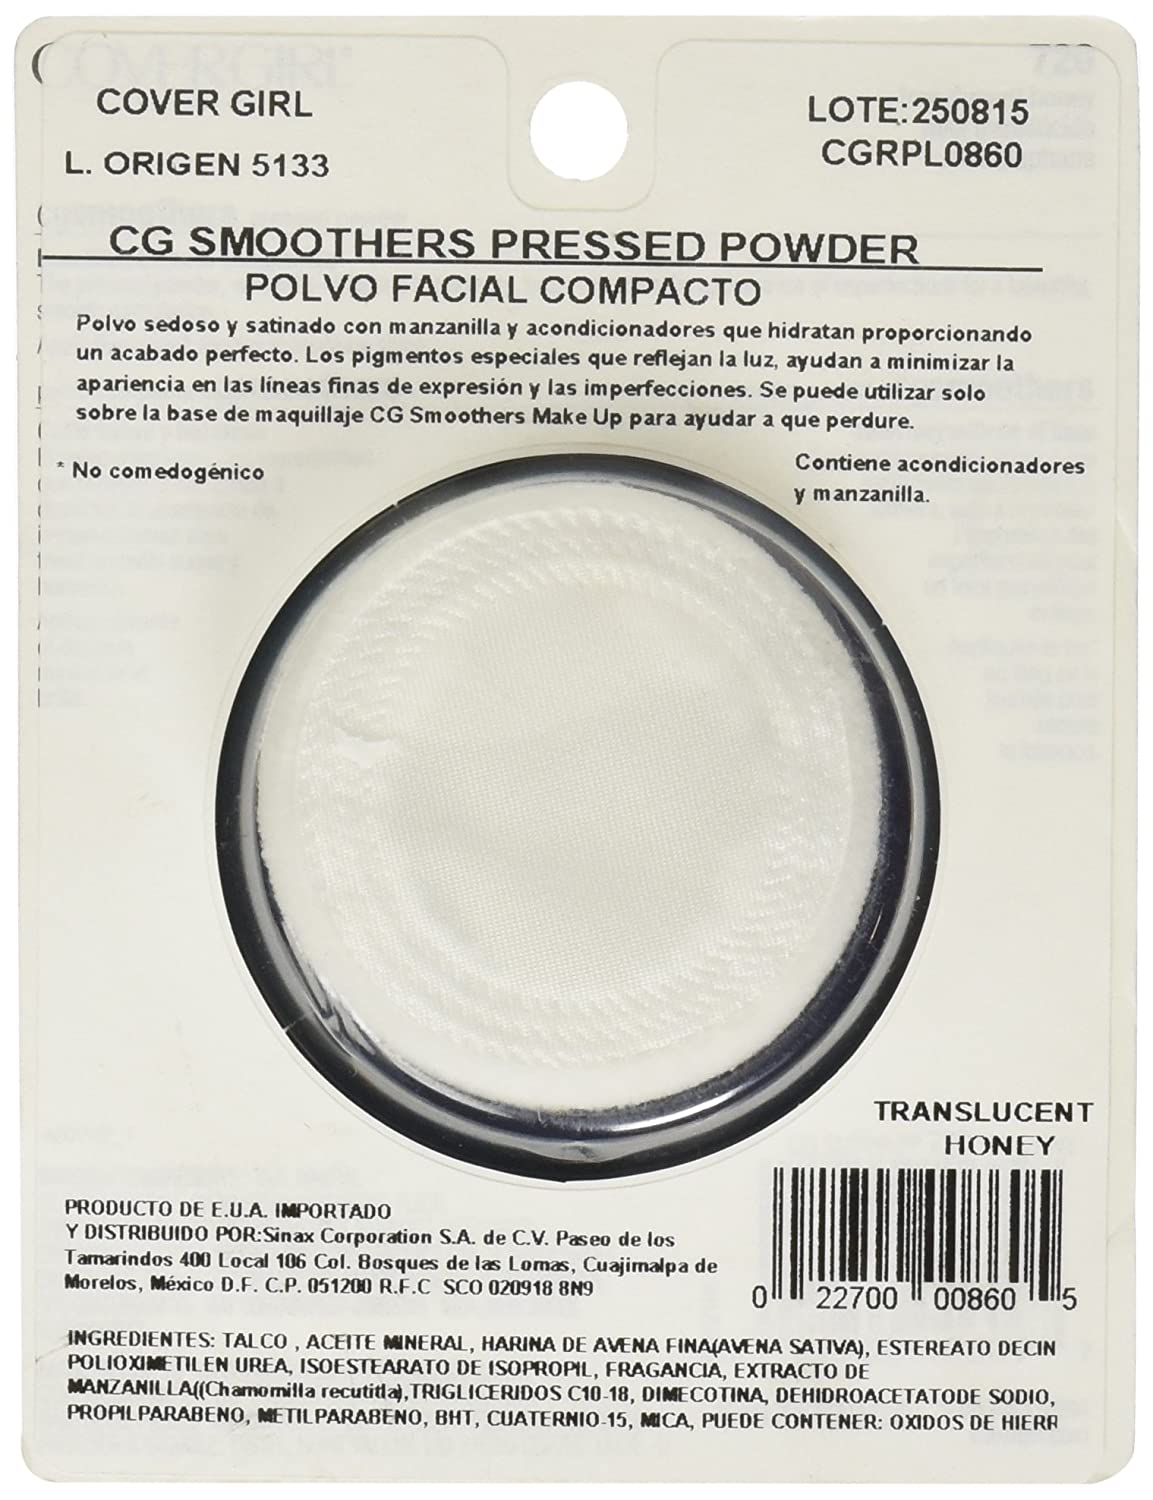 Amazon.com : CoverGirl Smoothers Pressed Powder, Translucent Honey [720] 0.32 oz : Beauty